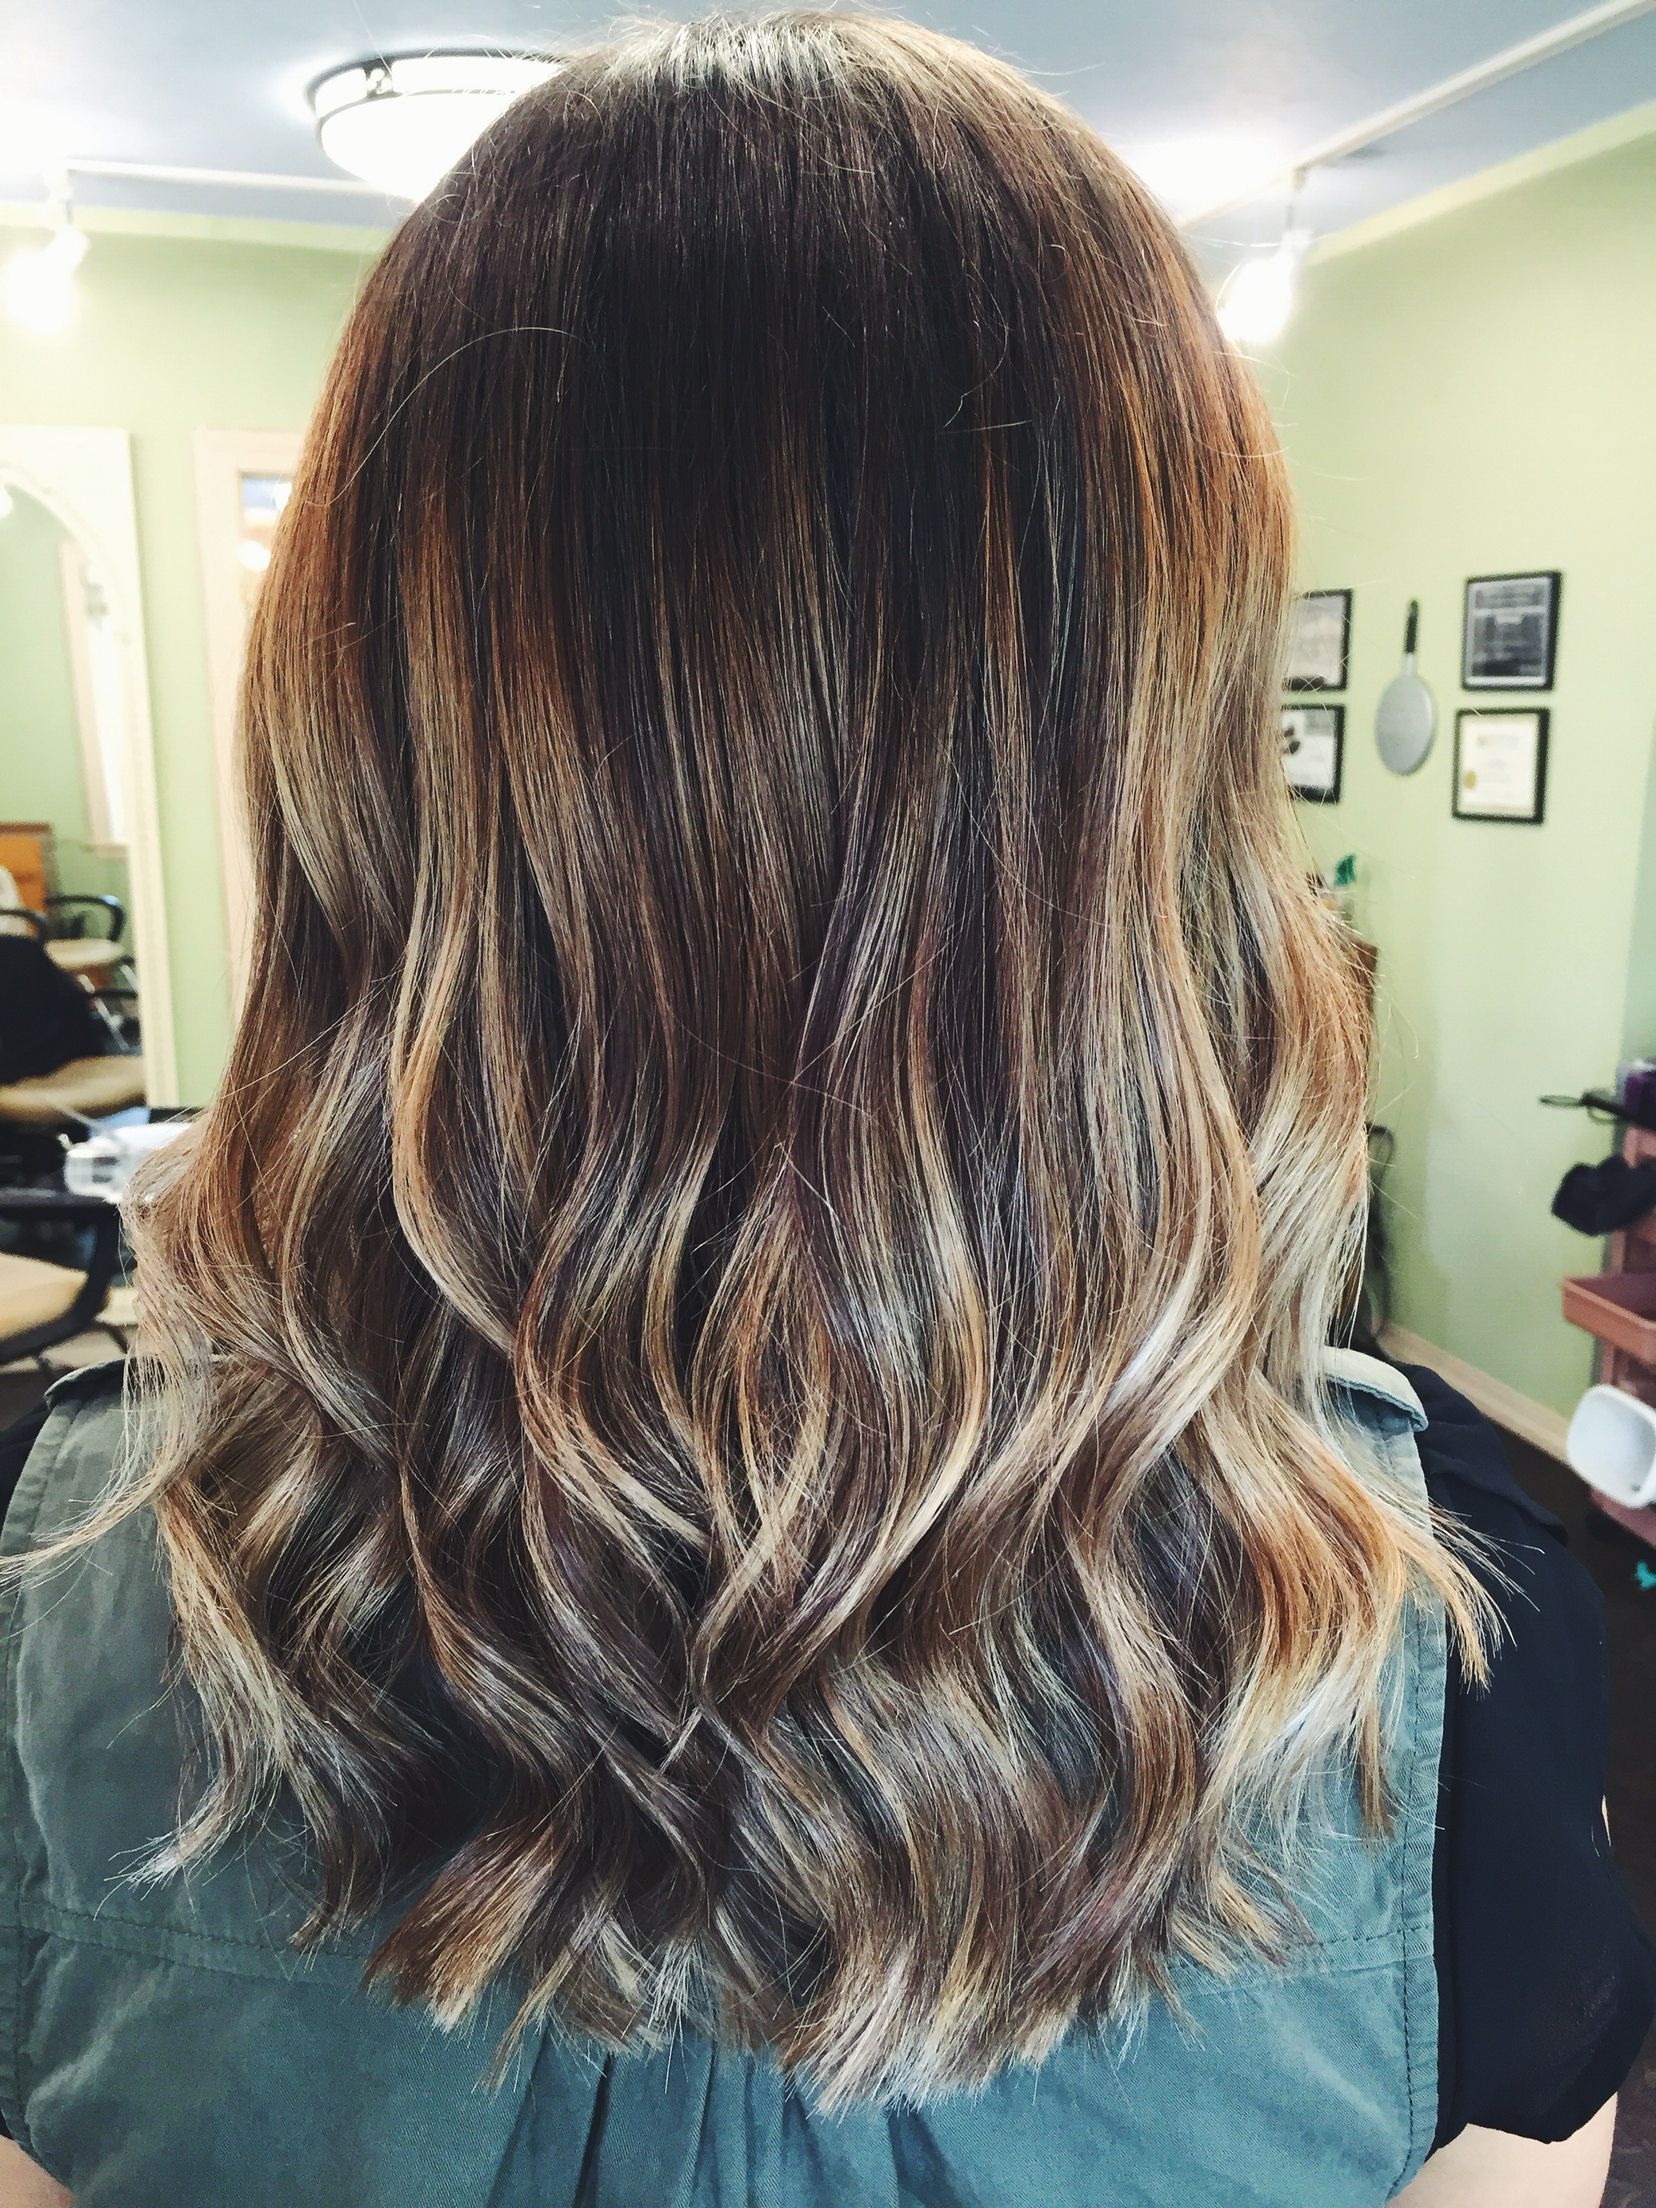 Subtle blonde balayage highlights for brunettes blonde subtle blonde balayage highlights for brunettes blonde balayage highlights brunette pmusecretfo Image collections